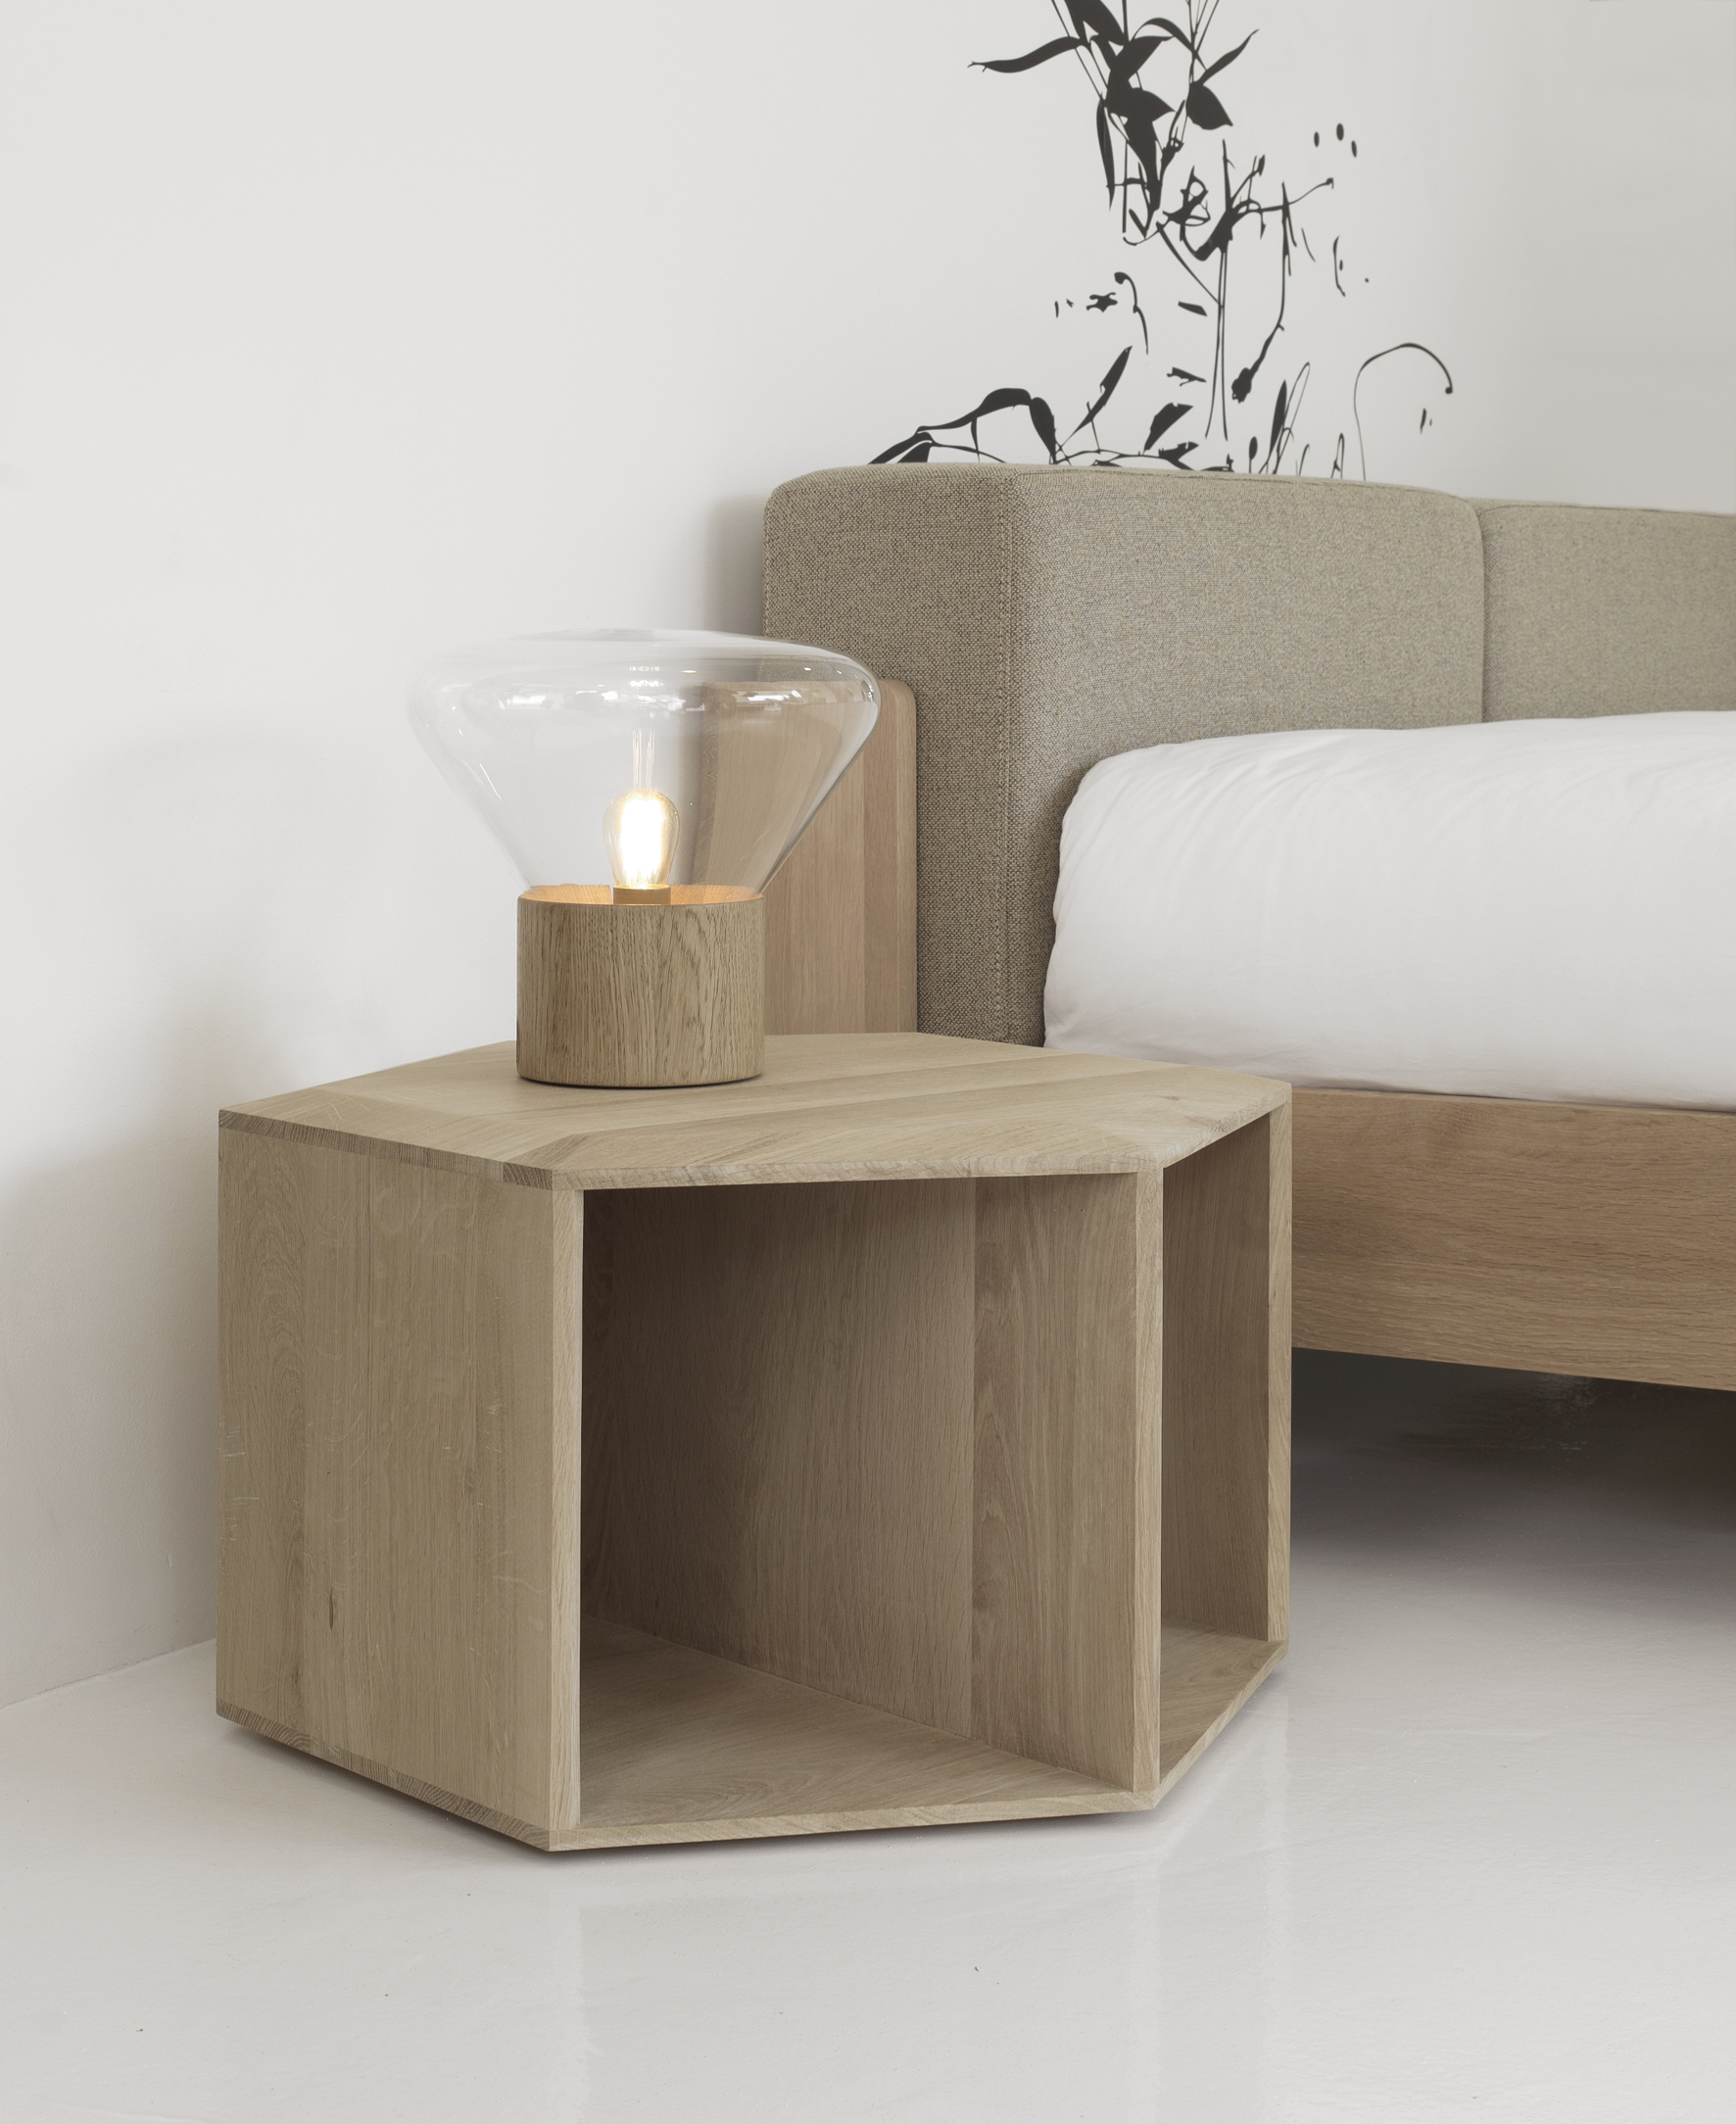 Hexa   is a small and smart table which can be  PLACED IN HORIZONTAL AND VERTICAL POSITIONS, WORKING AS A SIMPLE COFFEE TABLE, BUT ALSO AS A SIDE OR BEDSIDE TABLE.   Read more